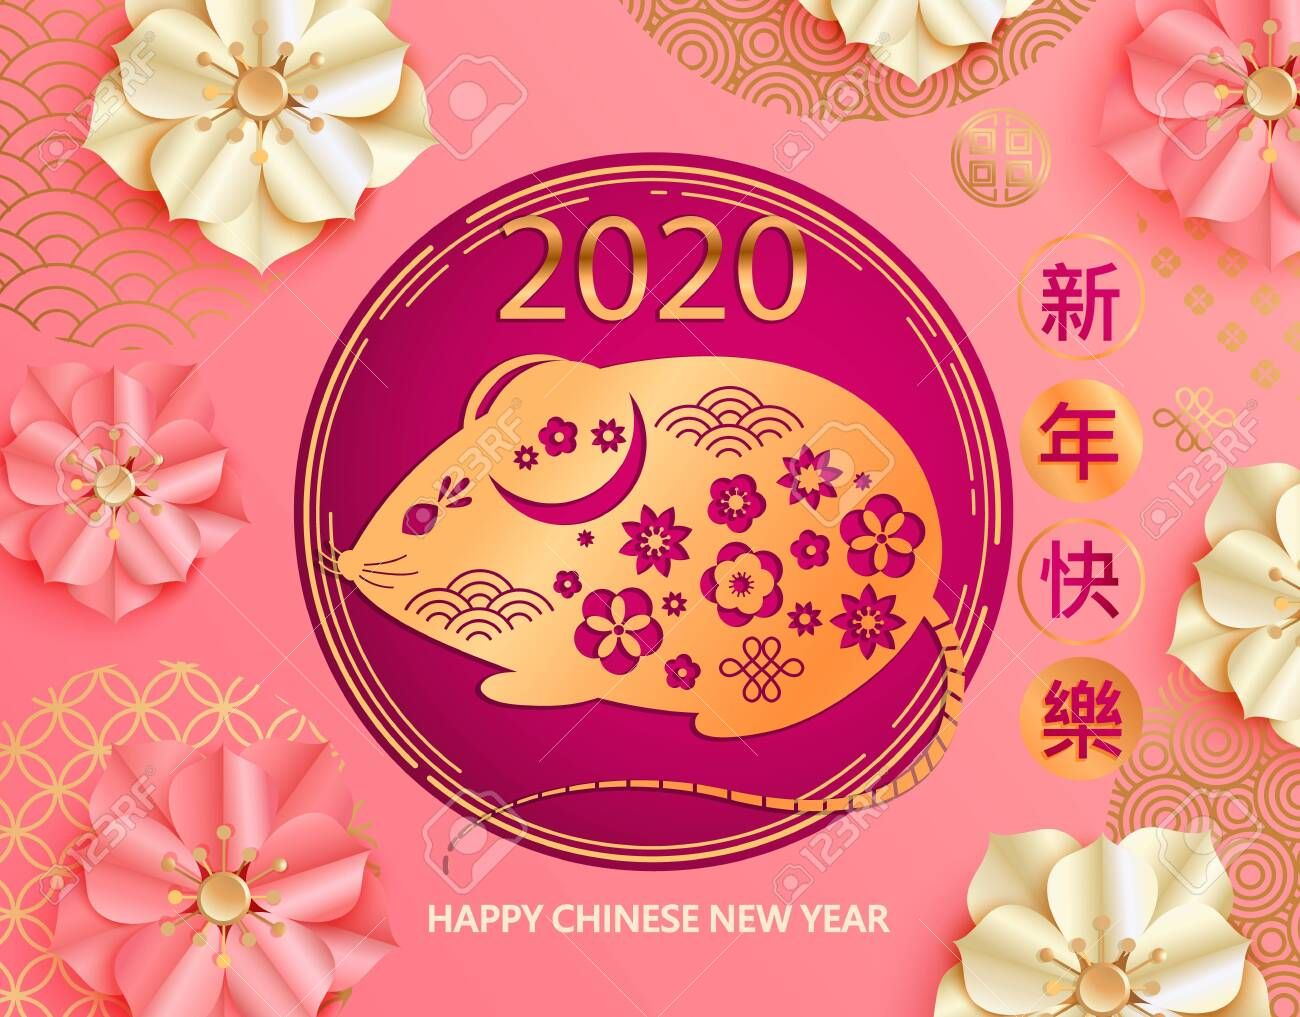 Chinese New Year 2020 greeting card with golden rat and